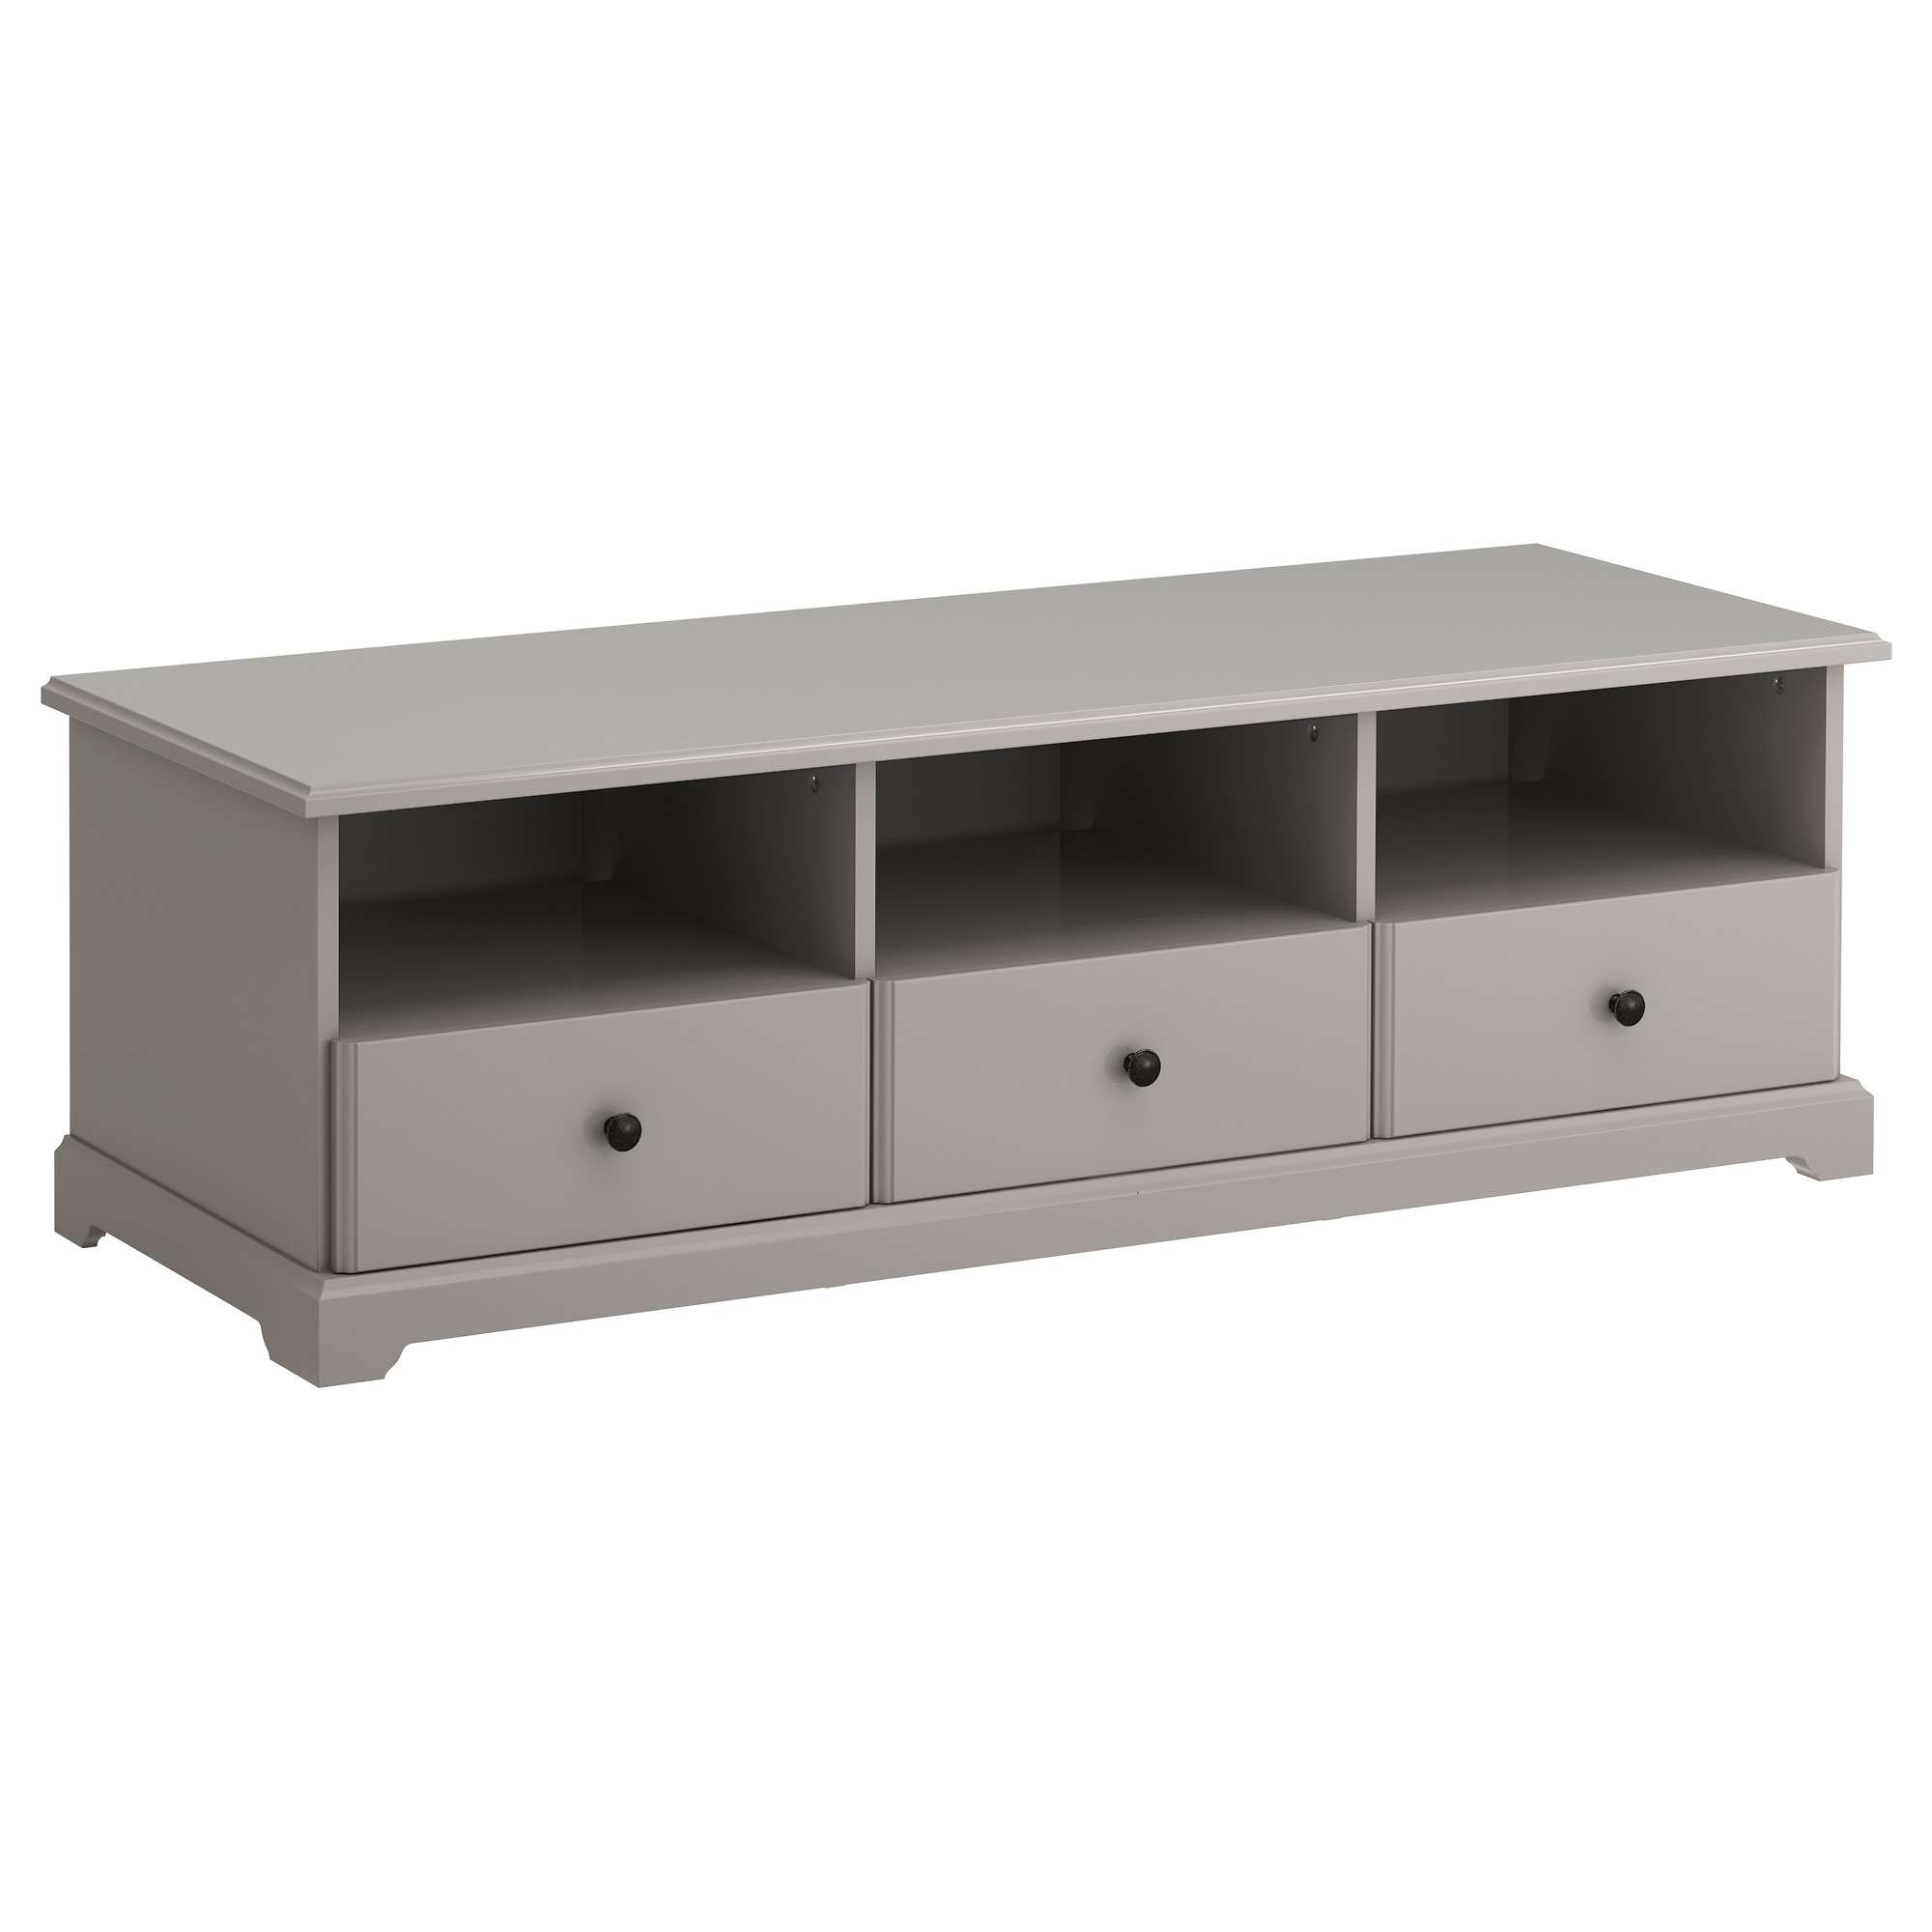 Tv Stands & Tv Units | Ikea Pertaining To Tv Stands And Cabinets (View 7 of 15)